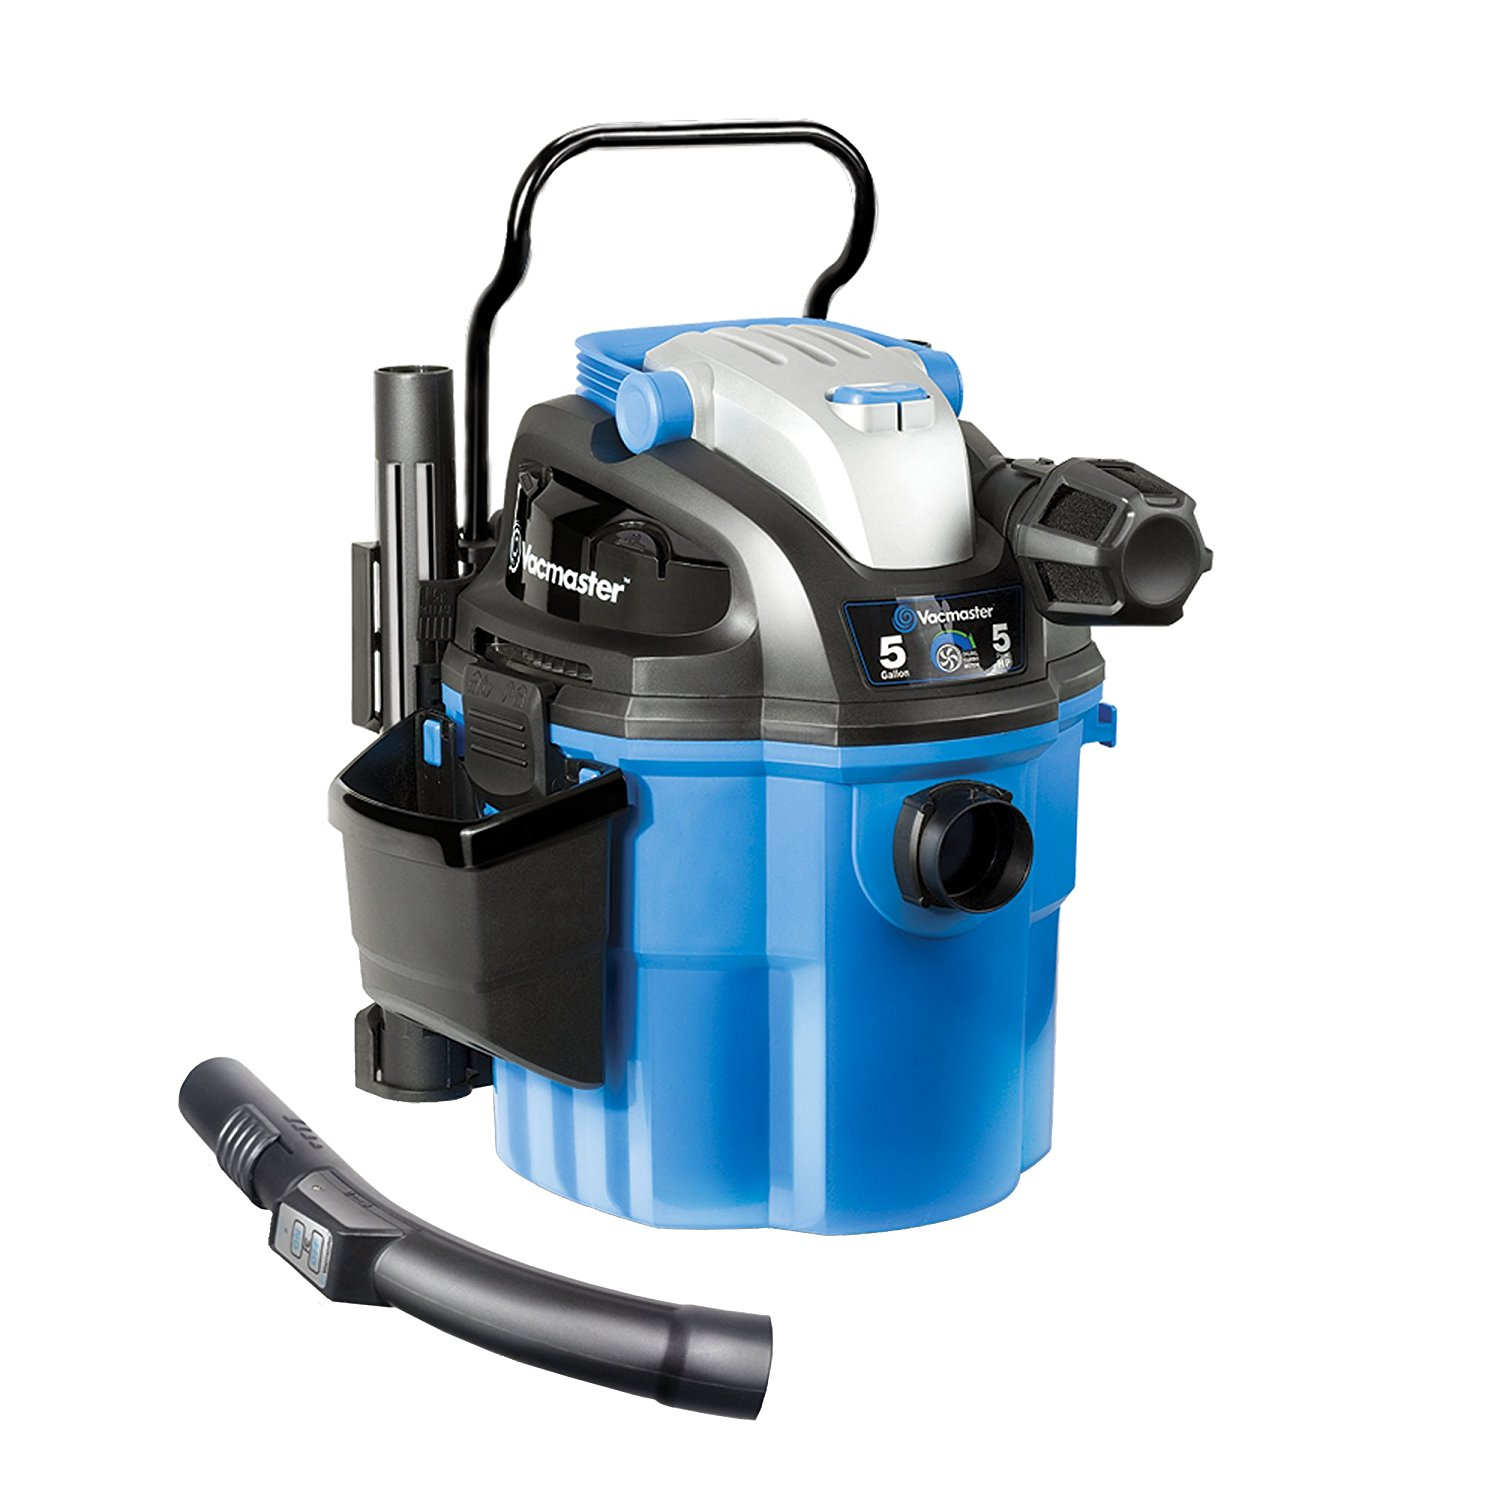 Vacmaster 5 Gallon Wall Mount Wet/Dry Vacuum